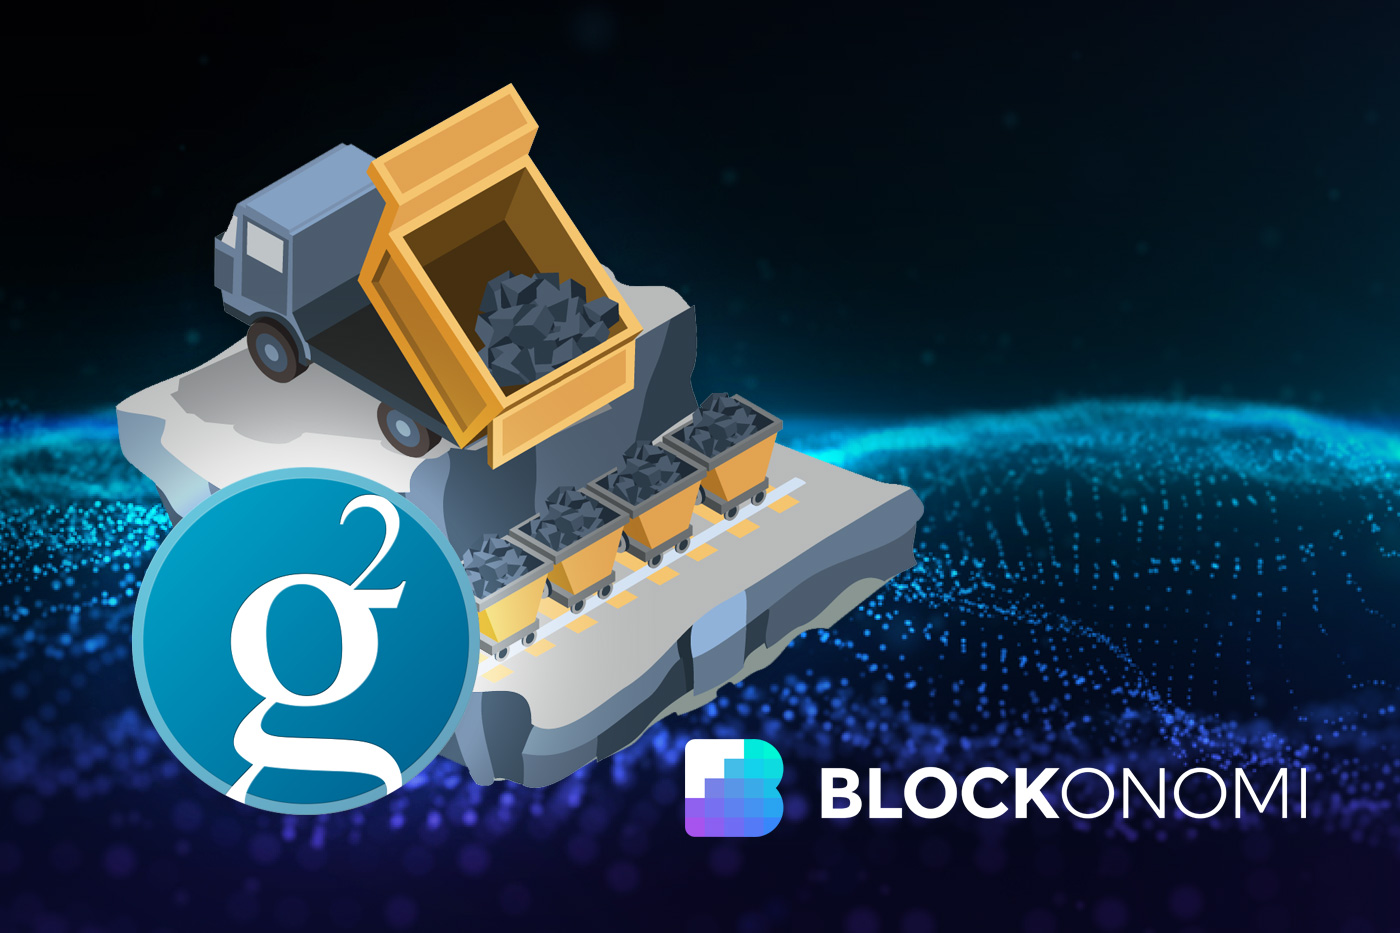 How to Mine Groestlcoin